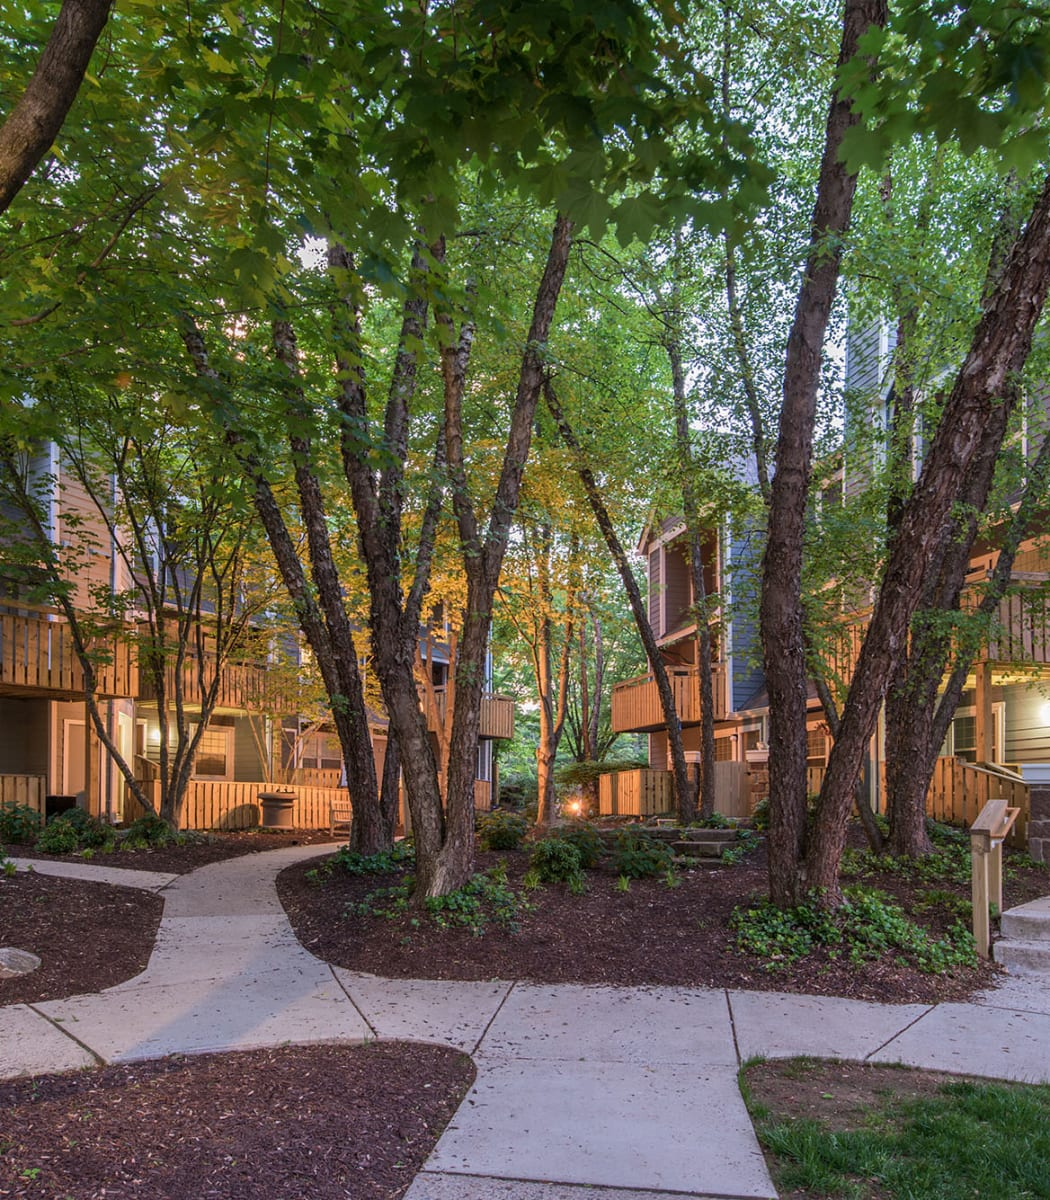 The courtyard at Timberlawn Crescent in North Bethesda, Maryland.